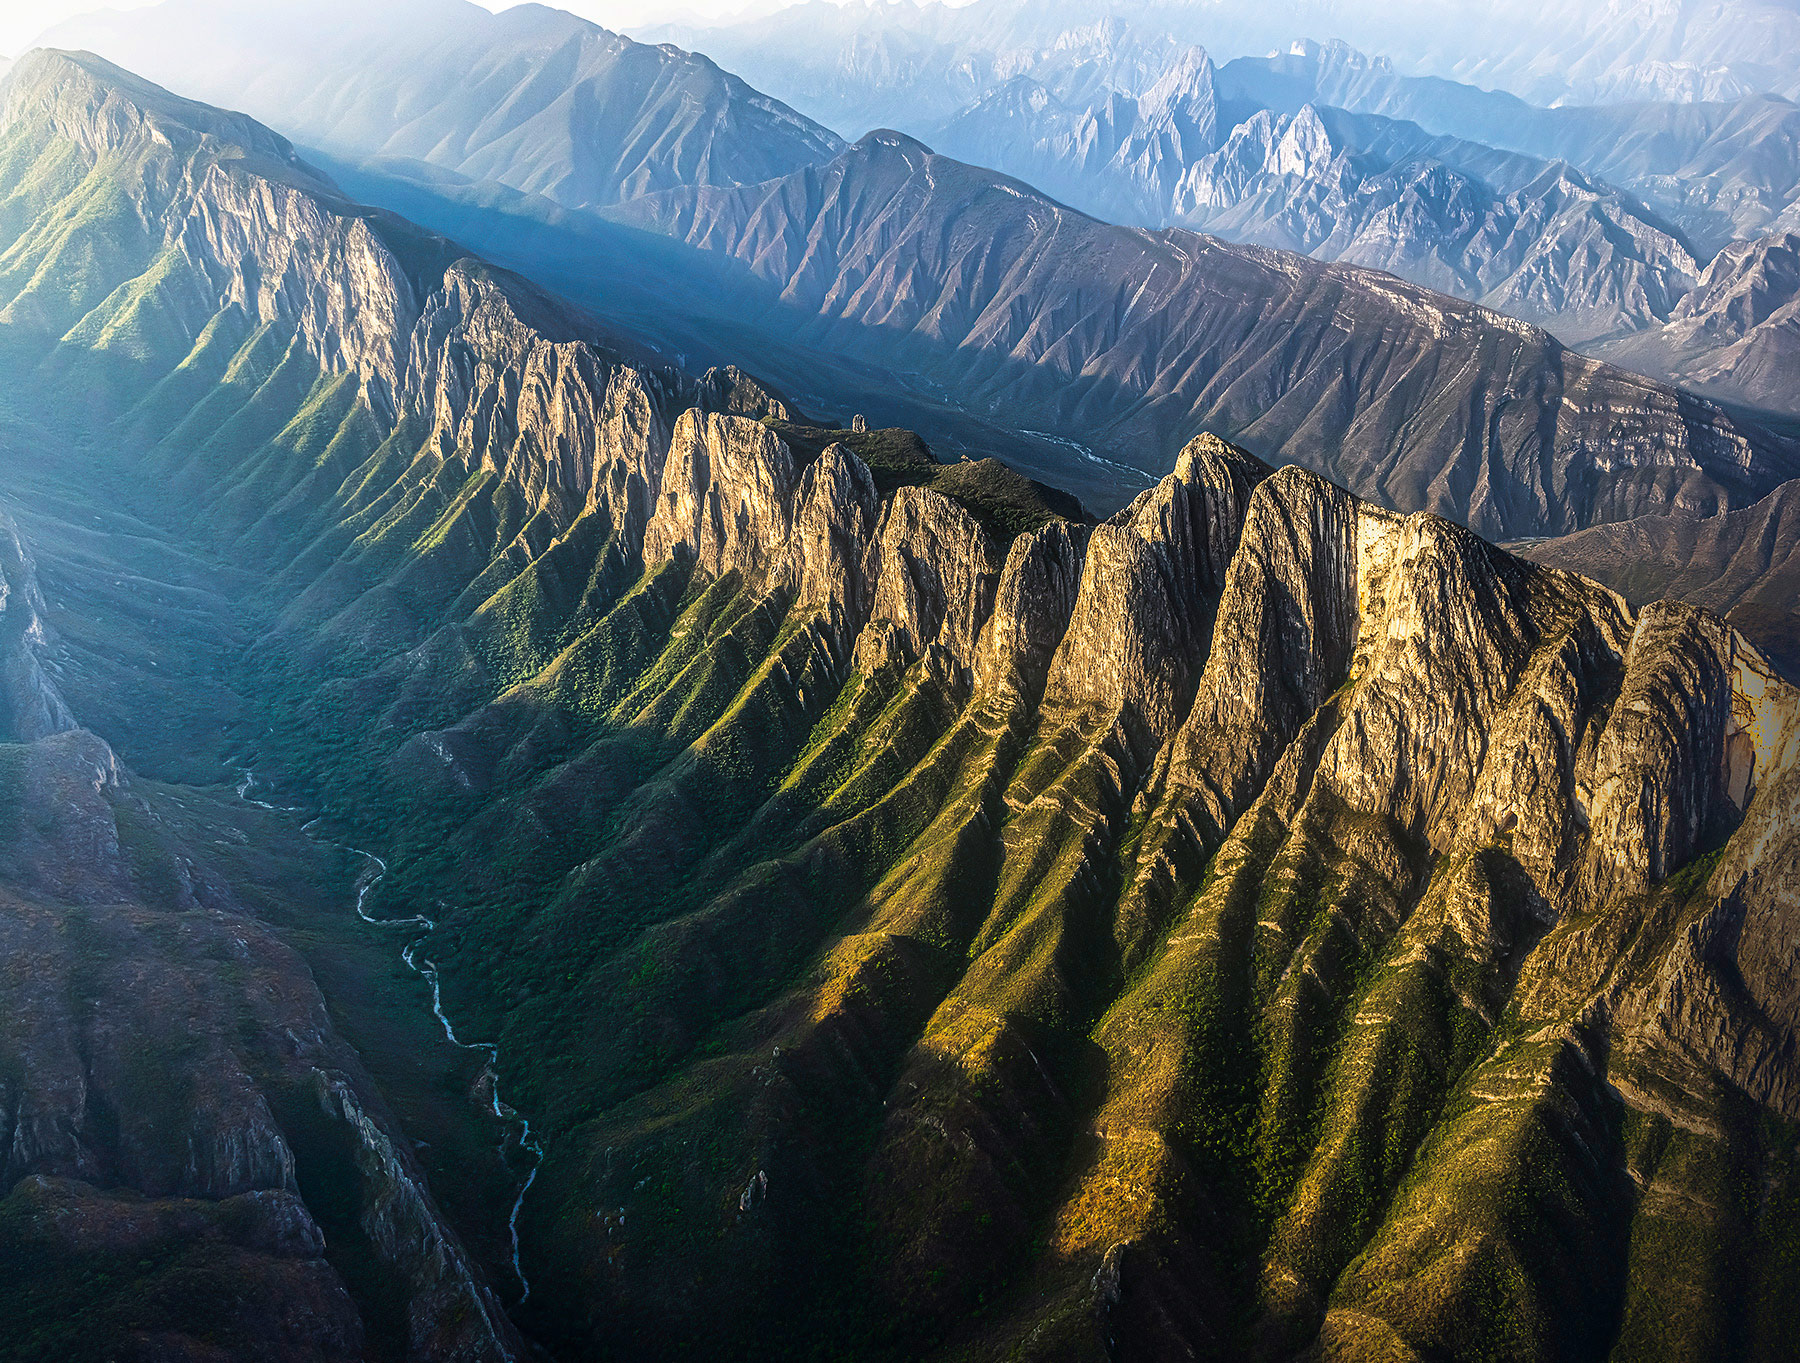 Layers of jagged cliff patterns and morning light above La Huasteca Canyons, Mexico